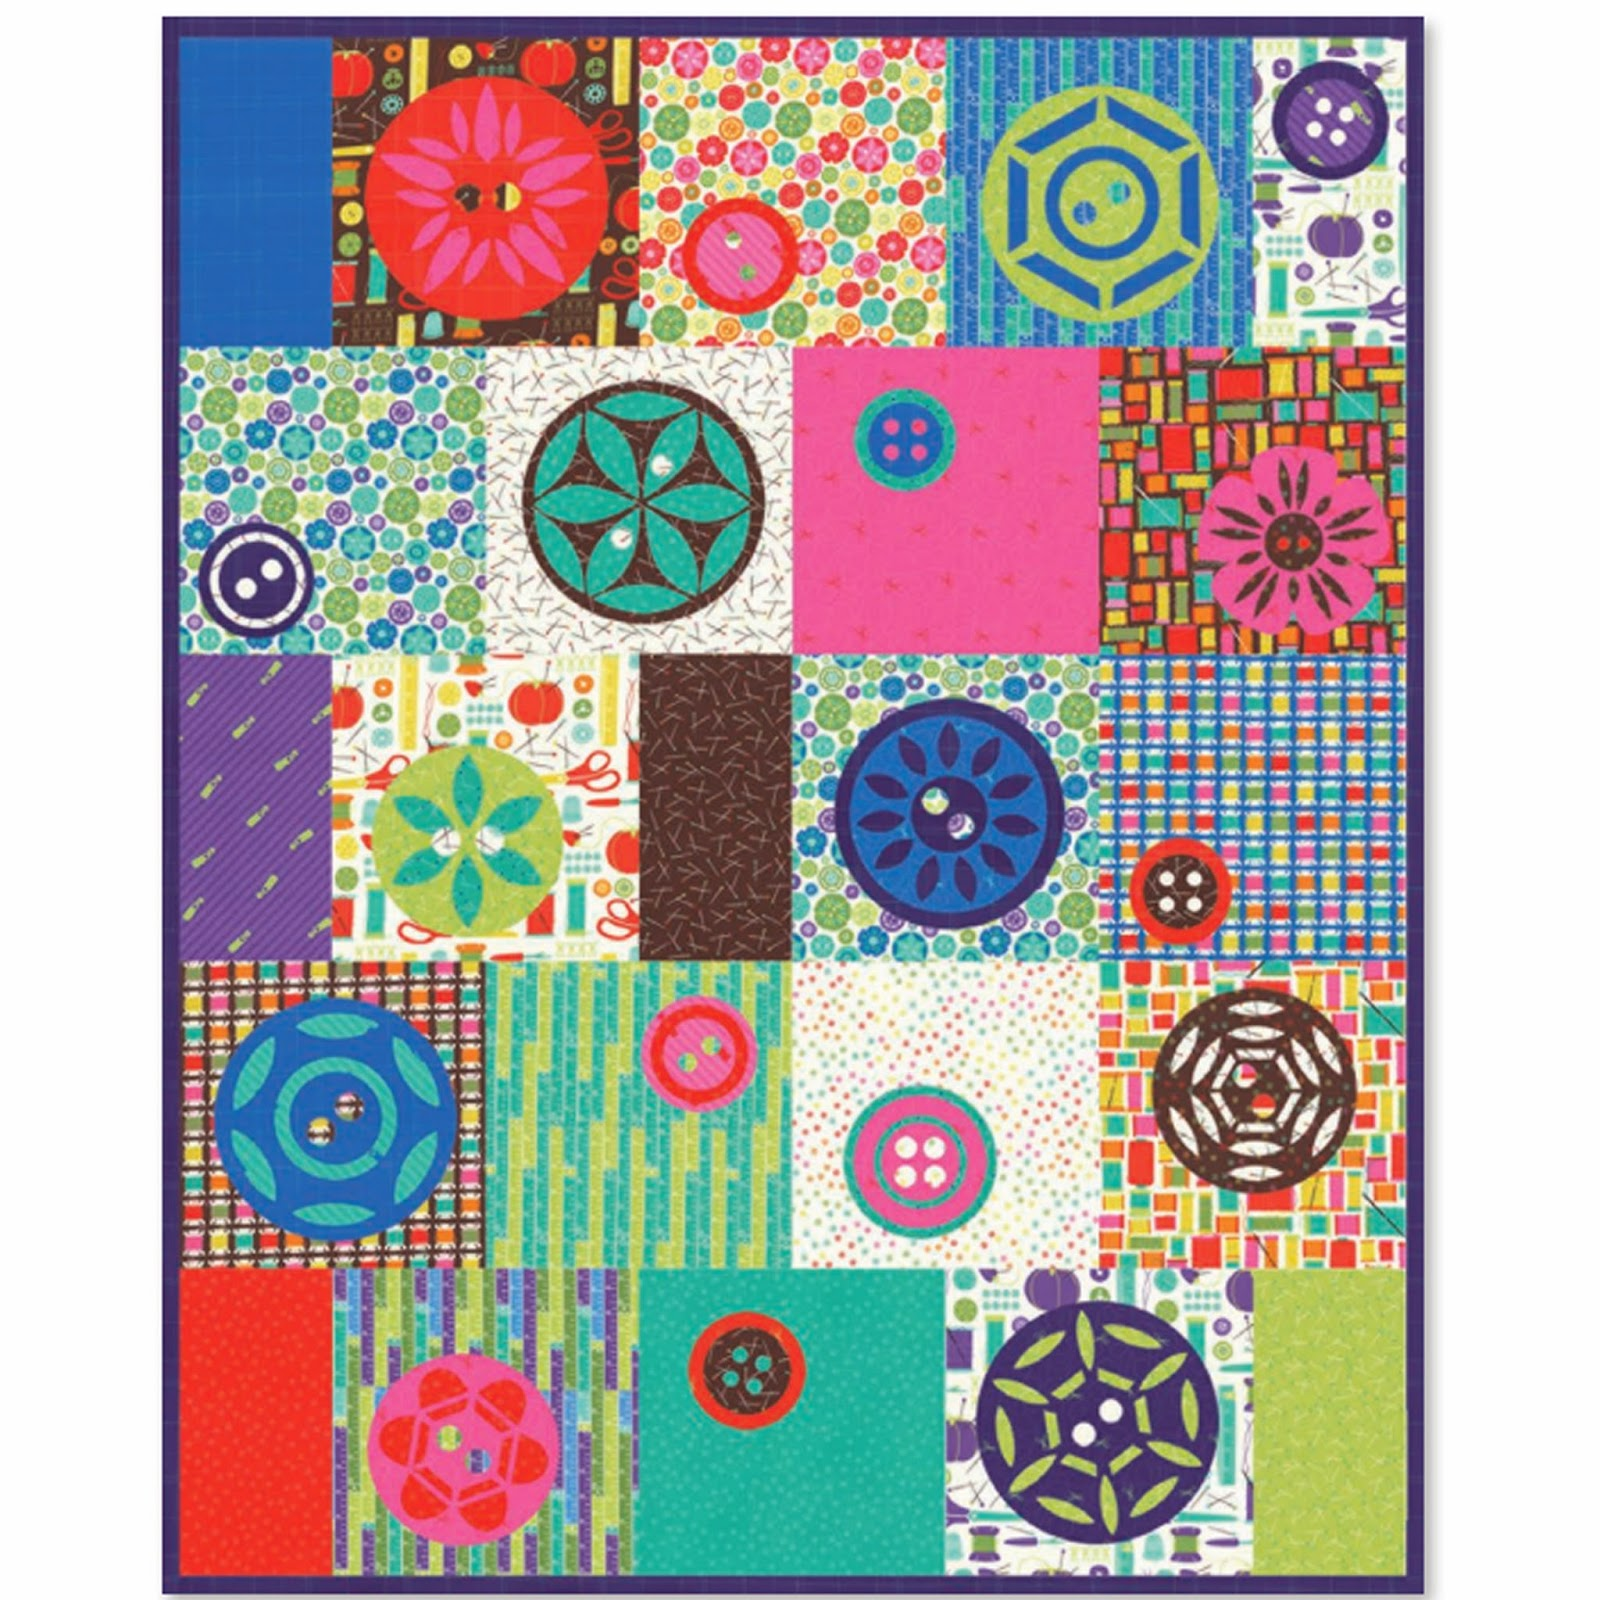 Moda SEWING BOX Free Quilt Pattern by Gina Martin